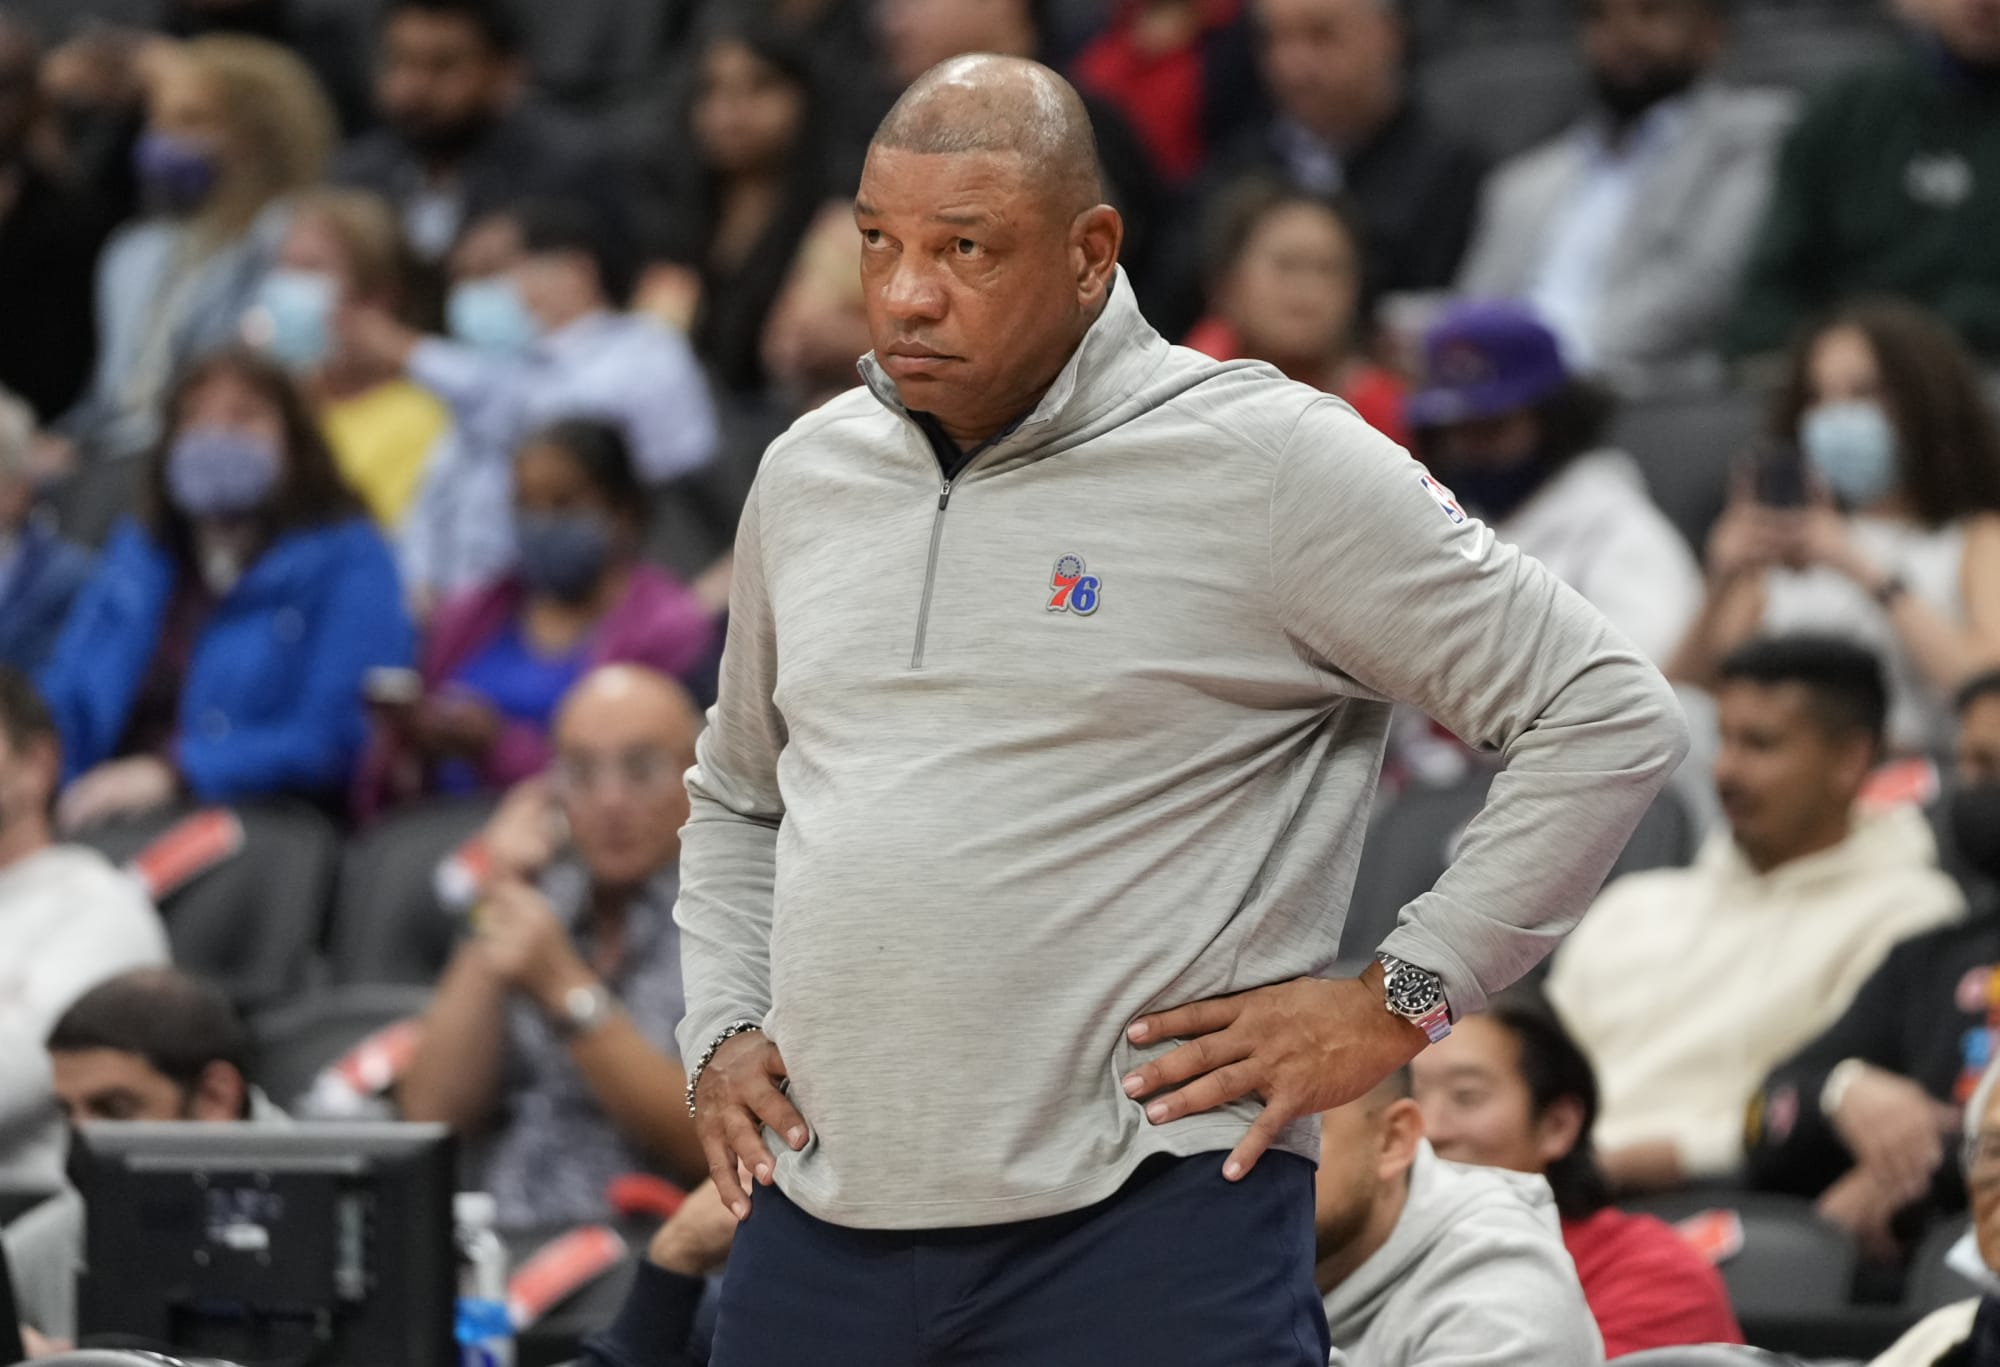 Raptors: Doc Rivers' comments on size show how tough TOR can be